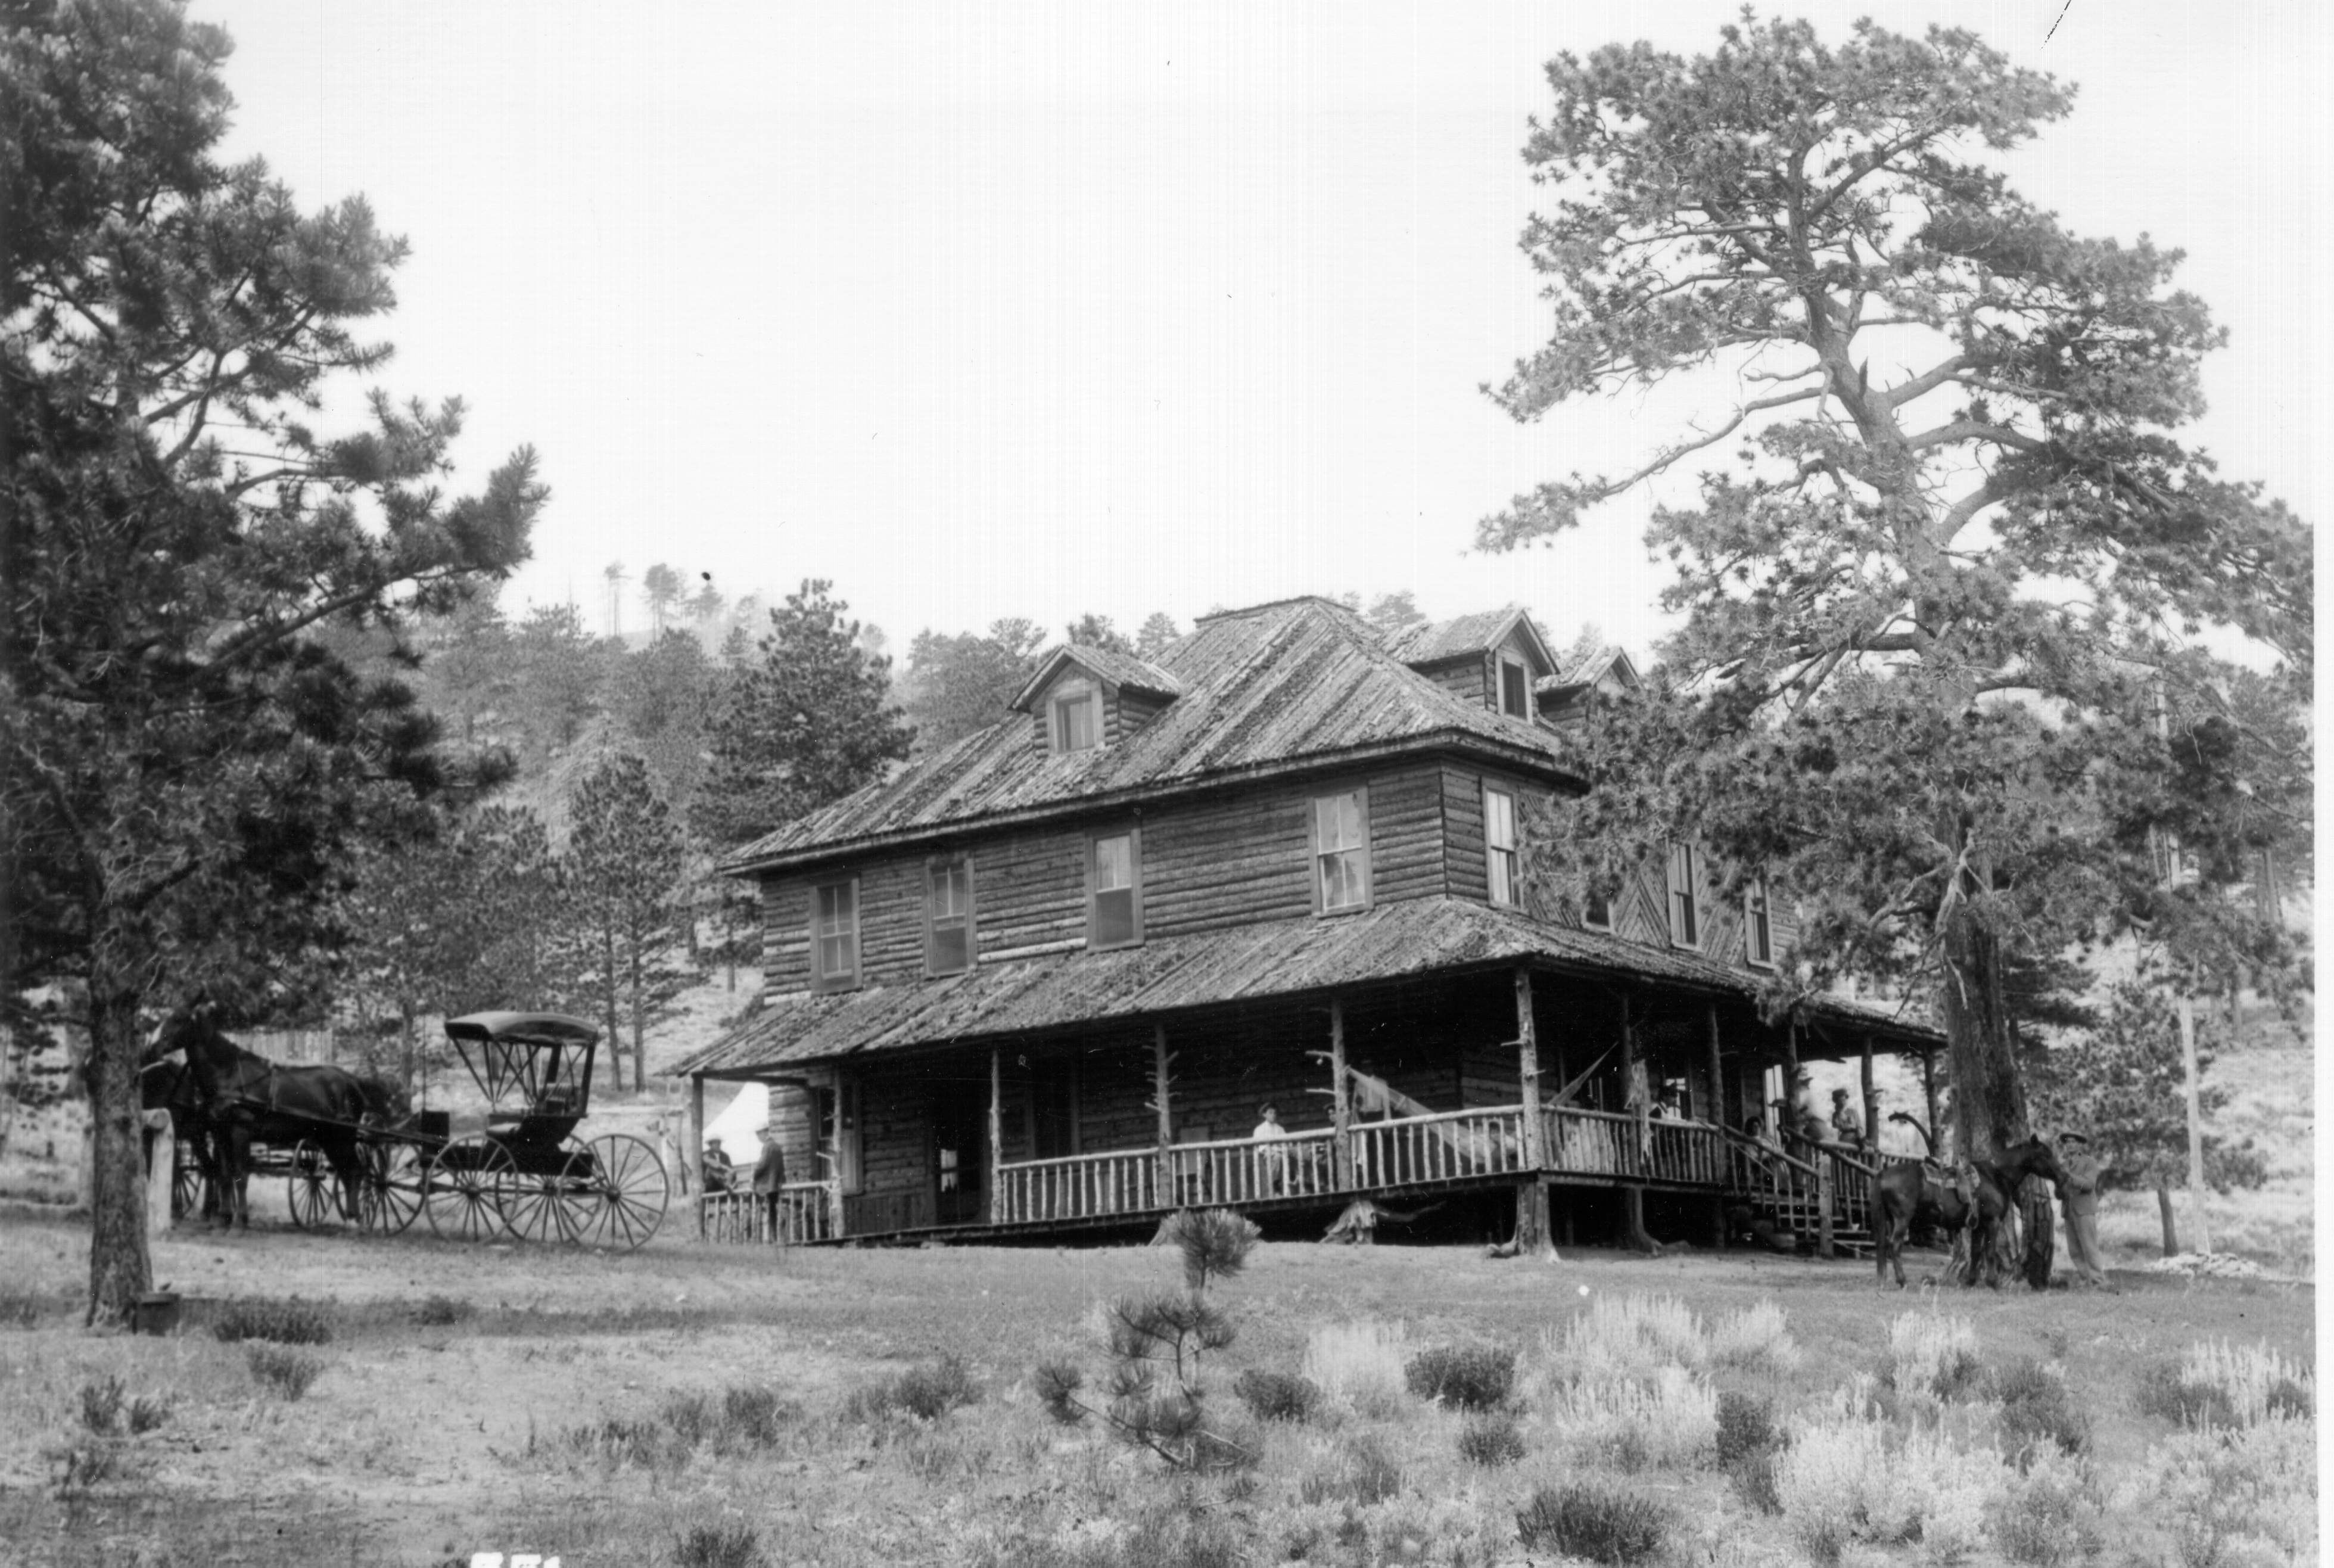 Original Wind River Lodge- Early 1900s